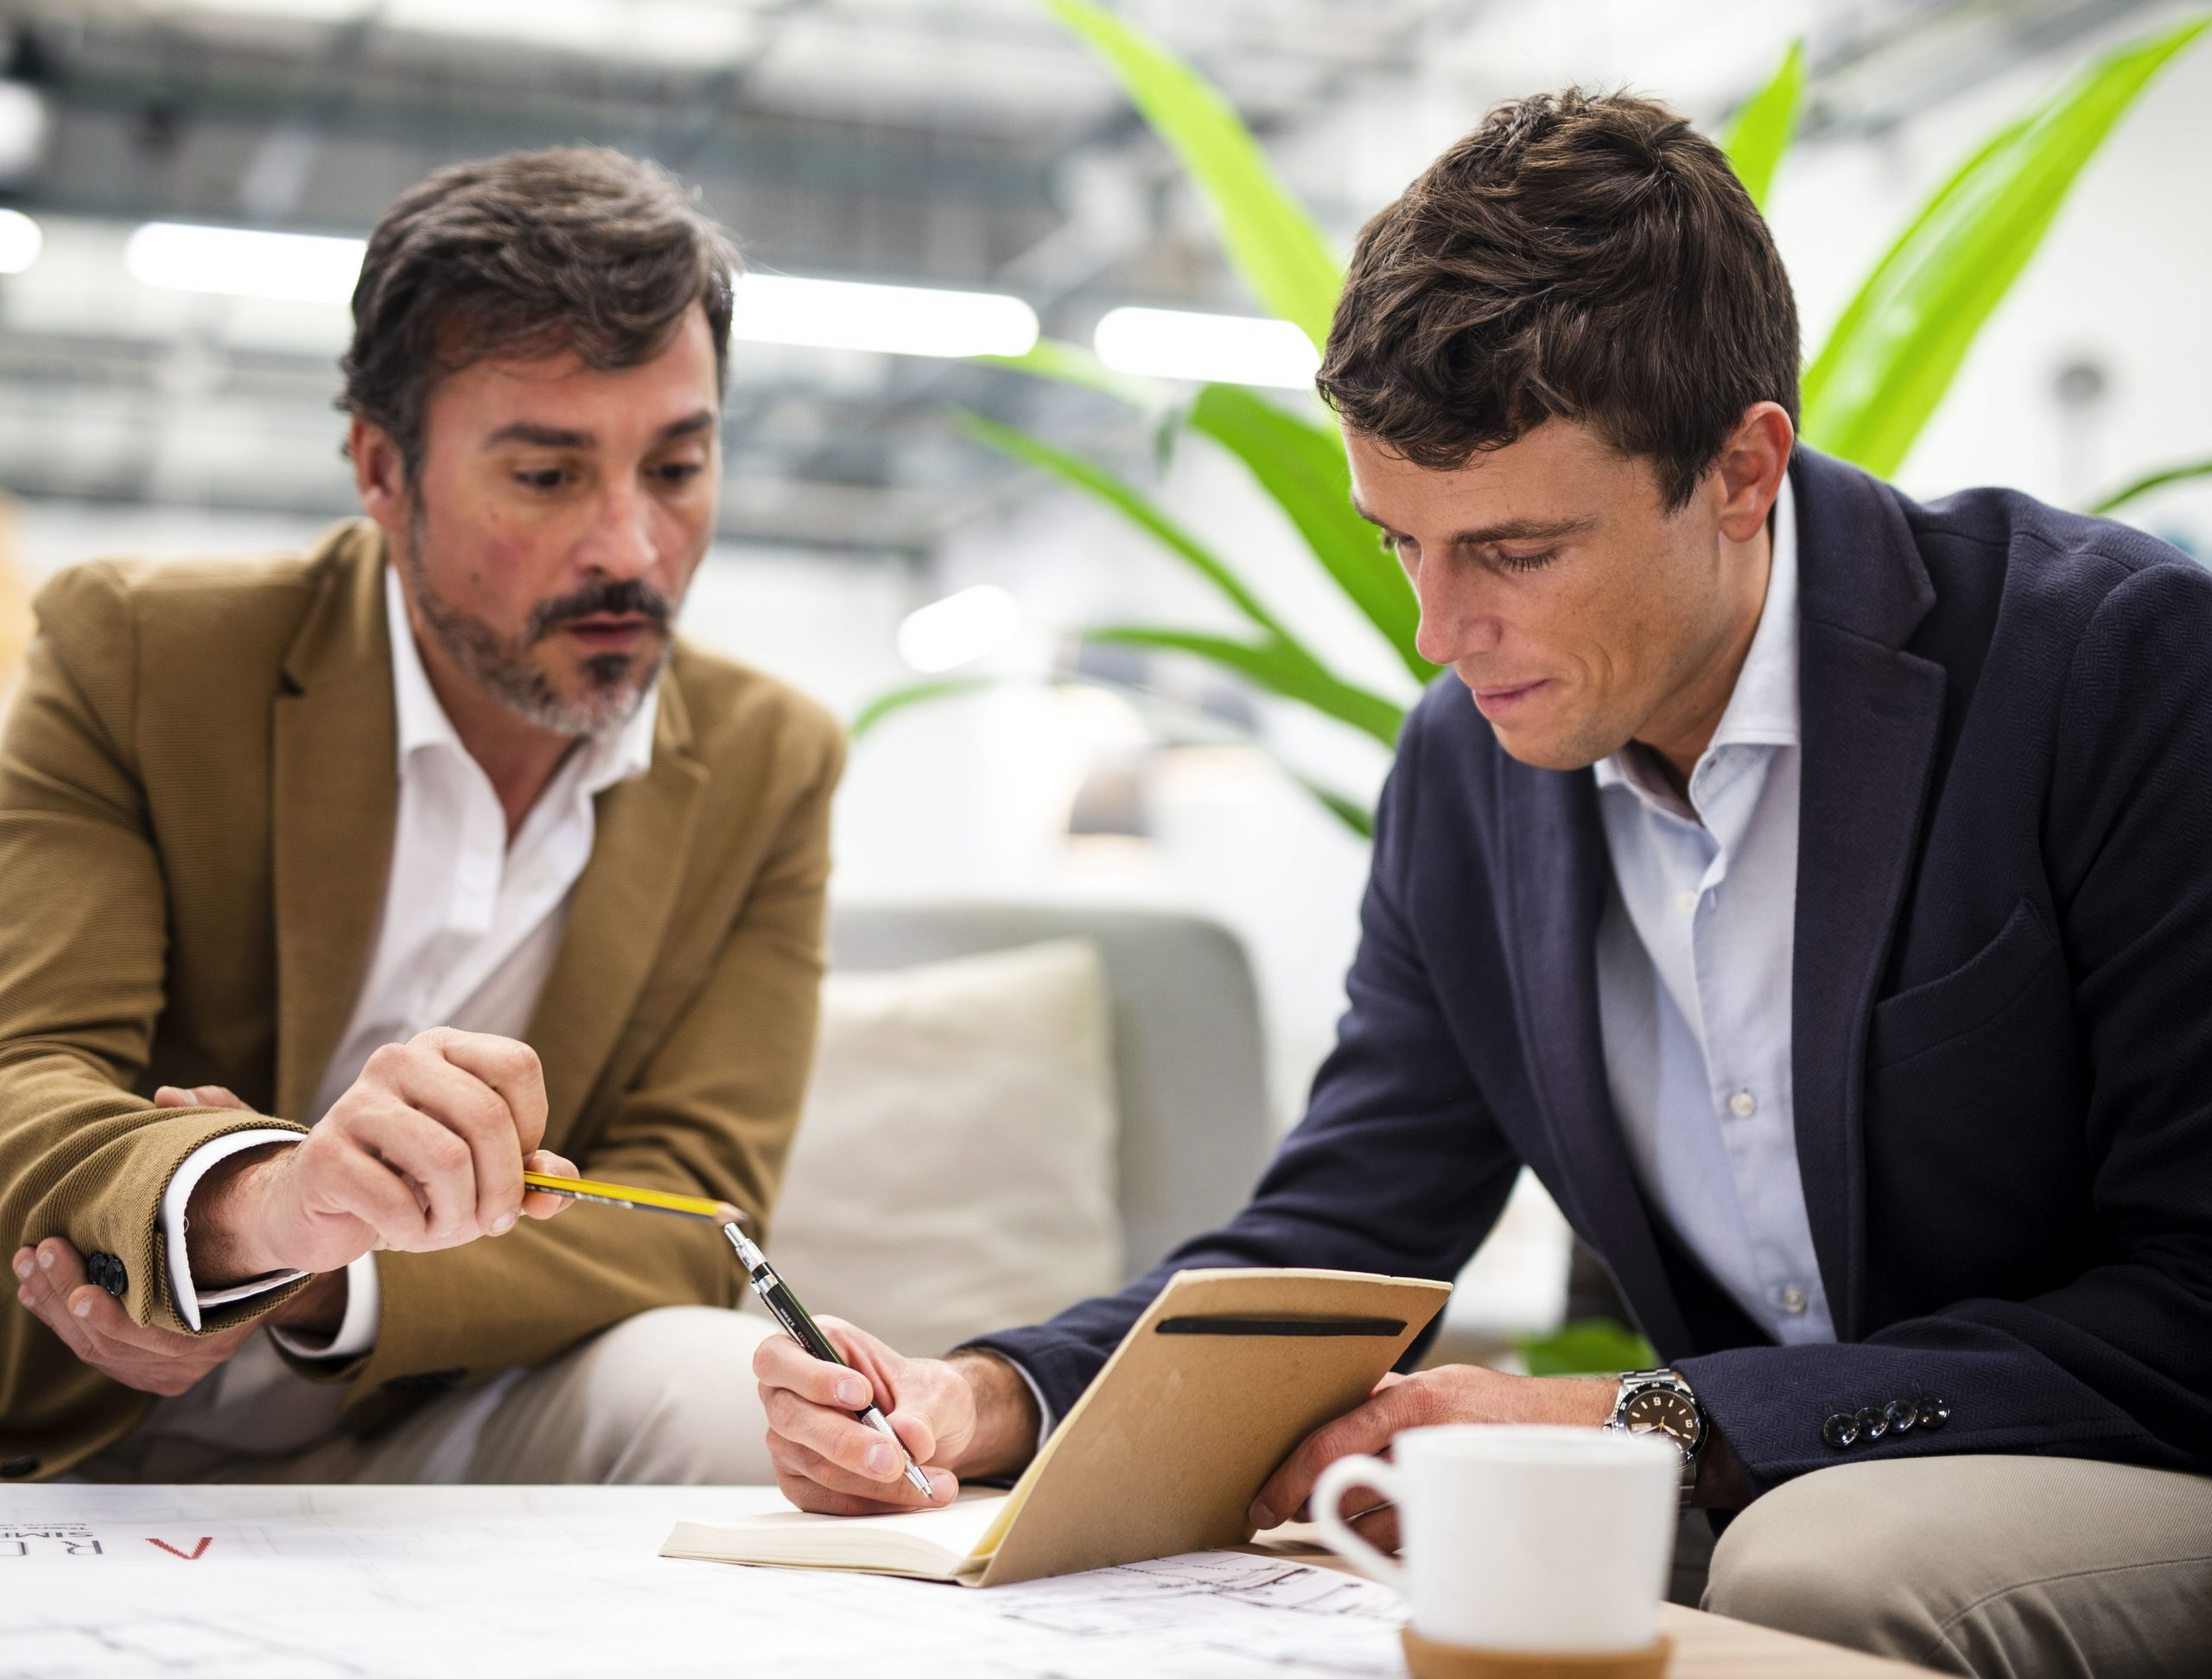 younger businessman taking notes with older businessman